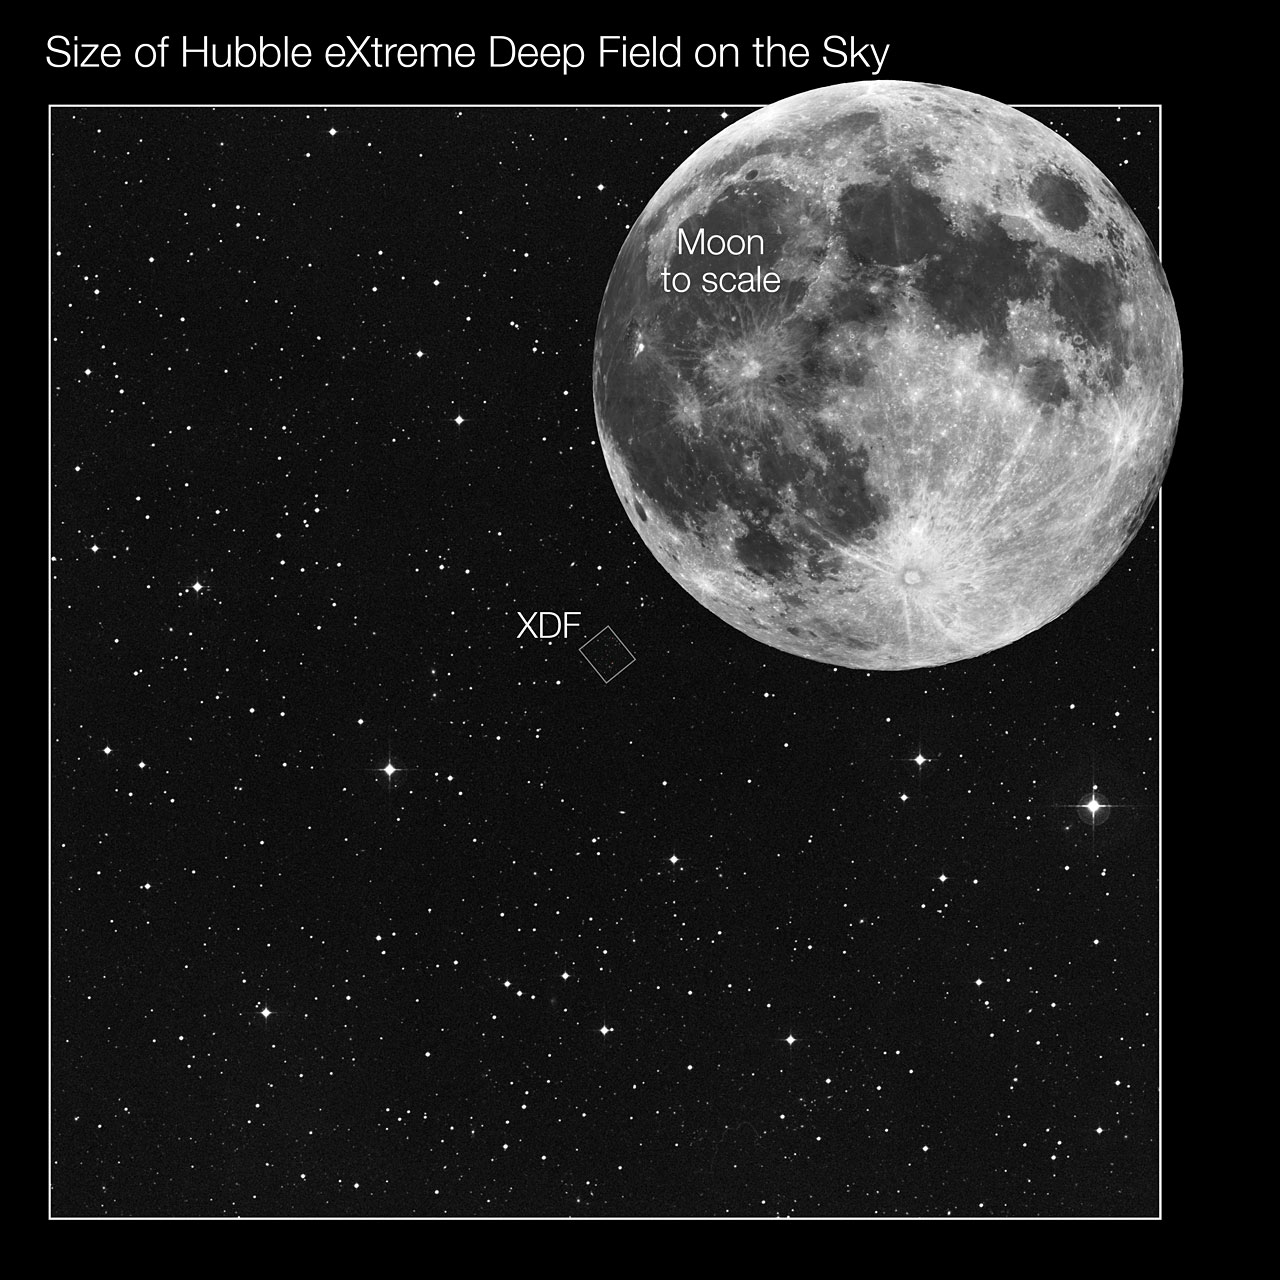 Location And Size Of The Hubble Extreme Deep Field Ground Based Image Esa Hubble